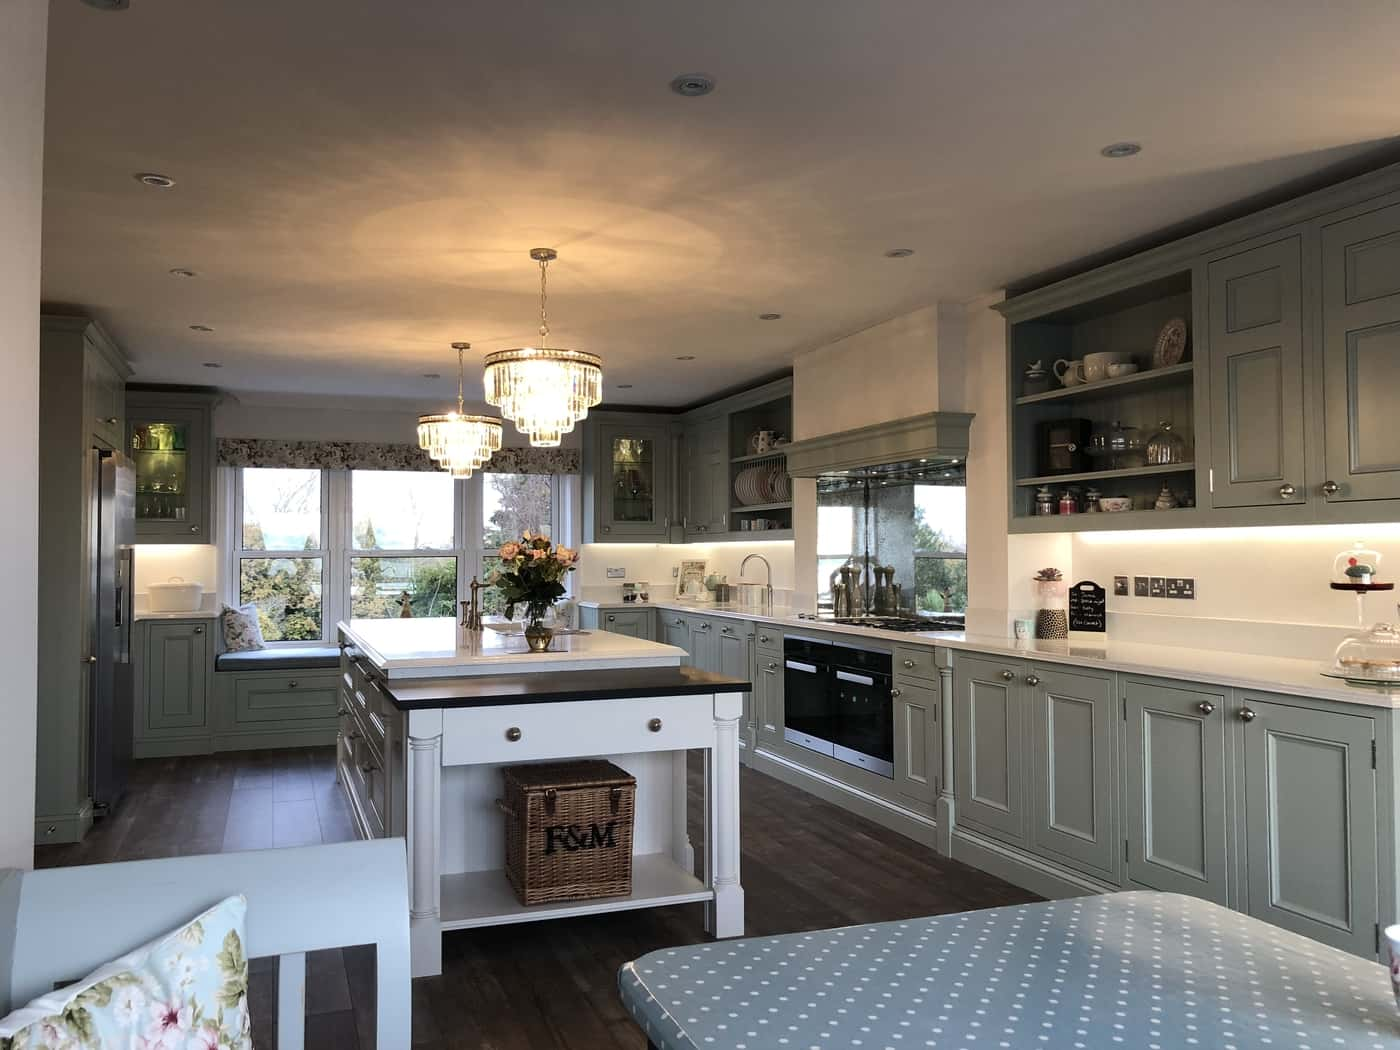 Working With Leanne Bowers From Old School Kitchen Company, We Were Able To  Provide This Wonderful Splashback. Which Was Installed In A Private  Residence In ...